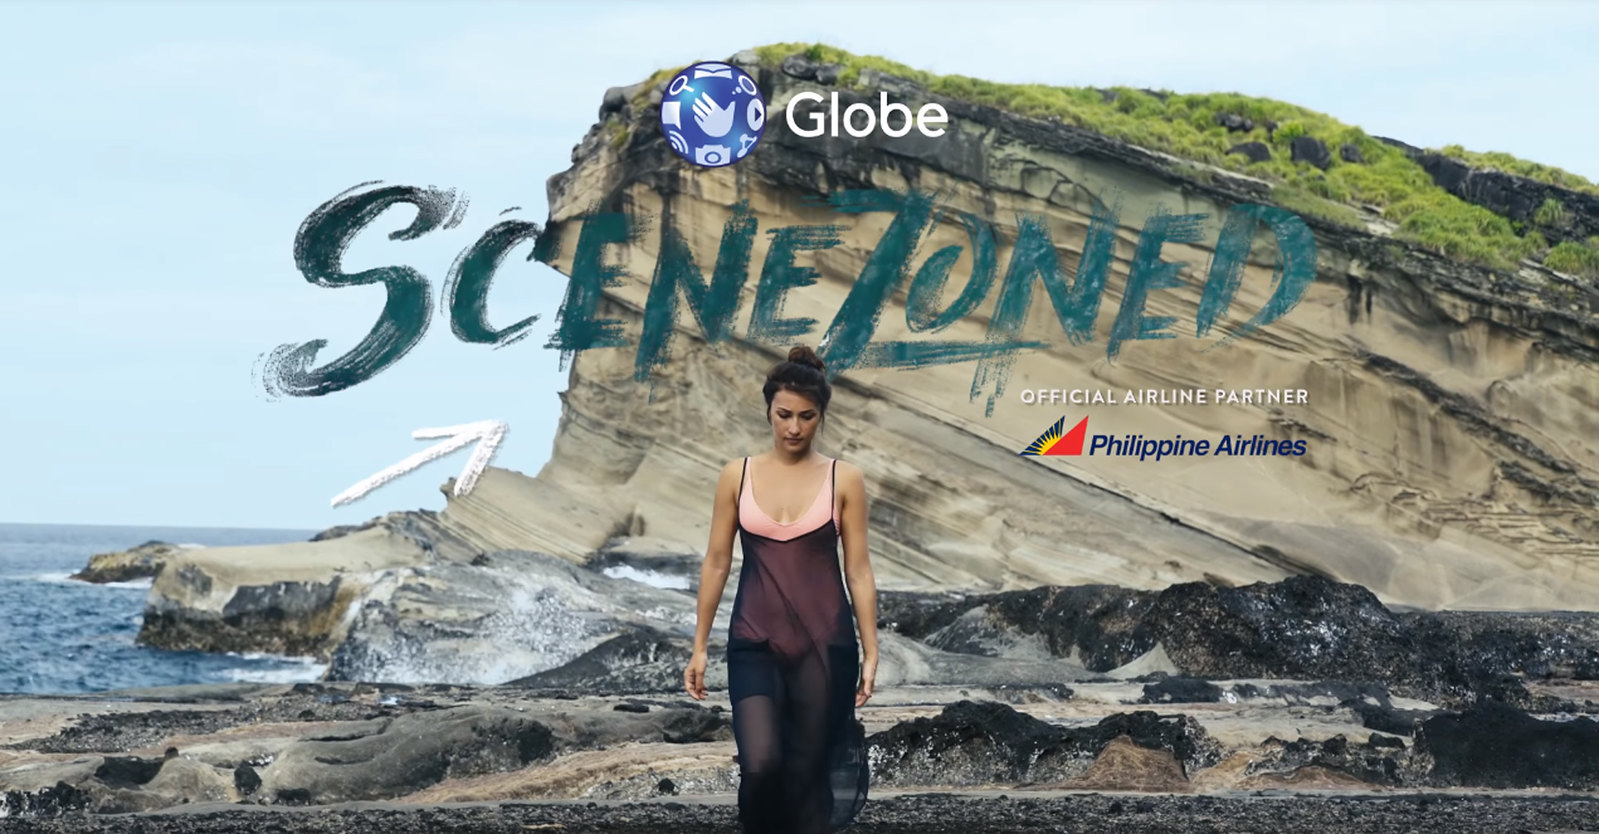 8 Finest Philippines Destinations at Globe Scenezoned